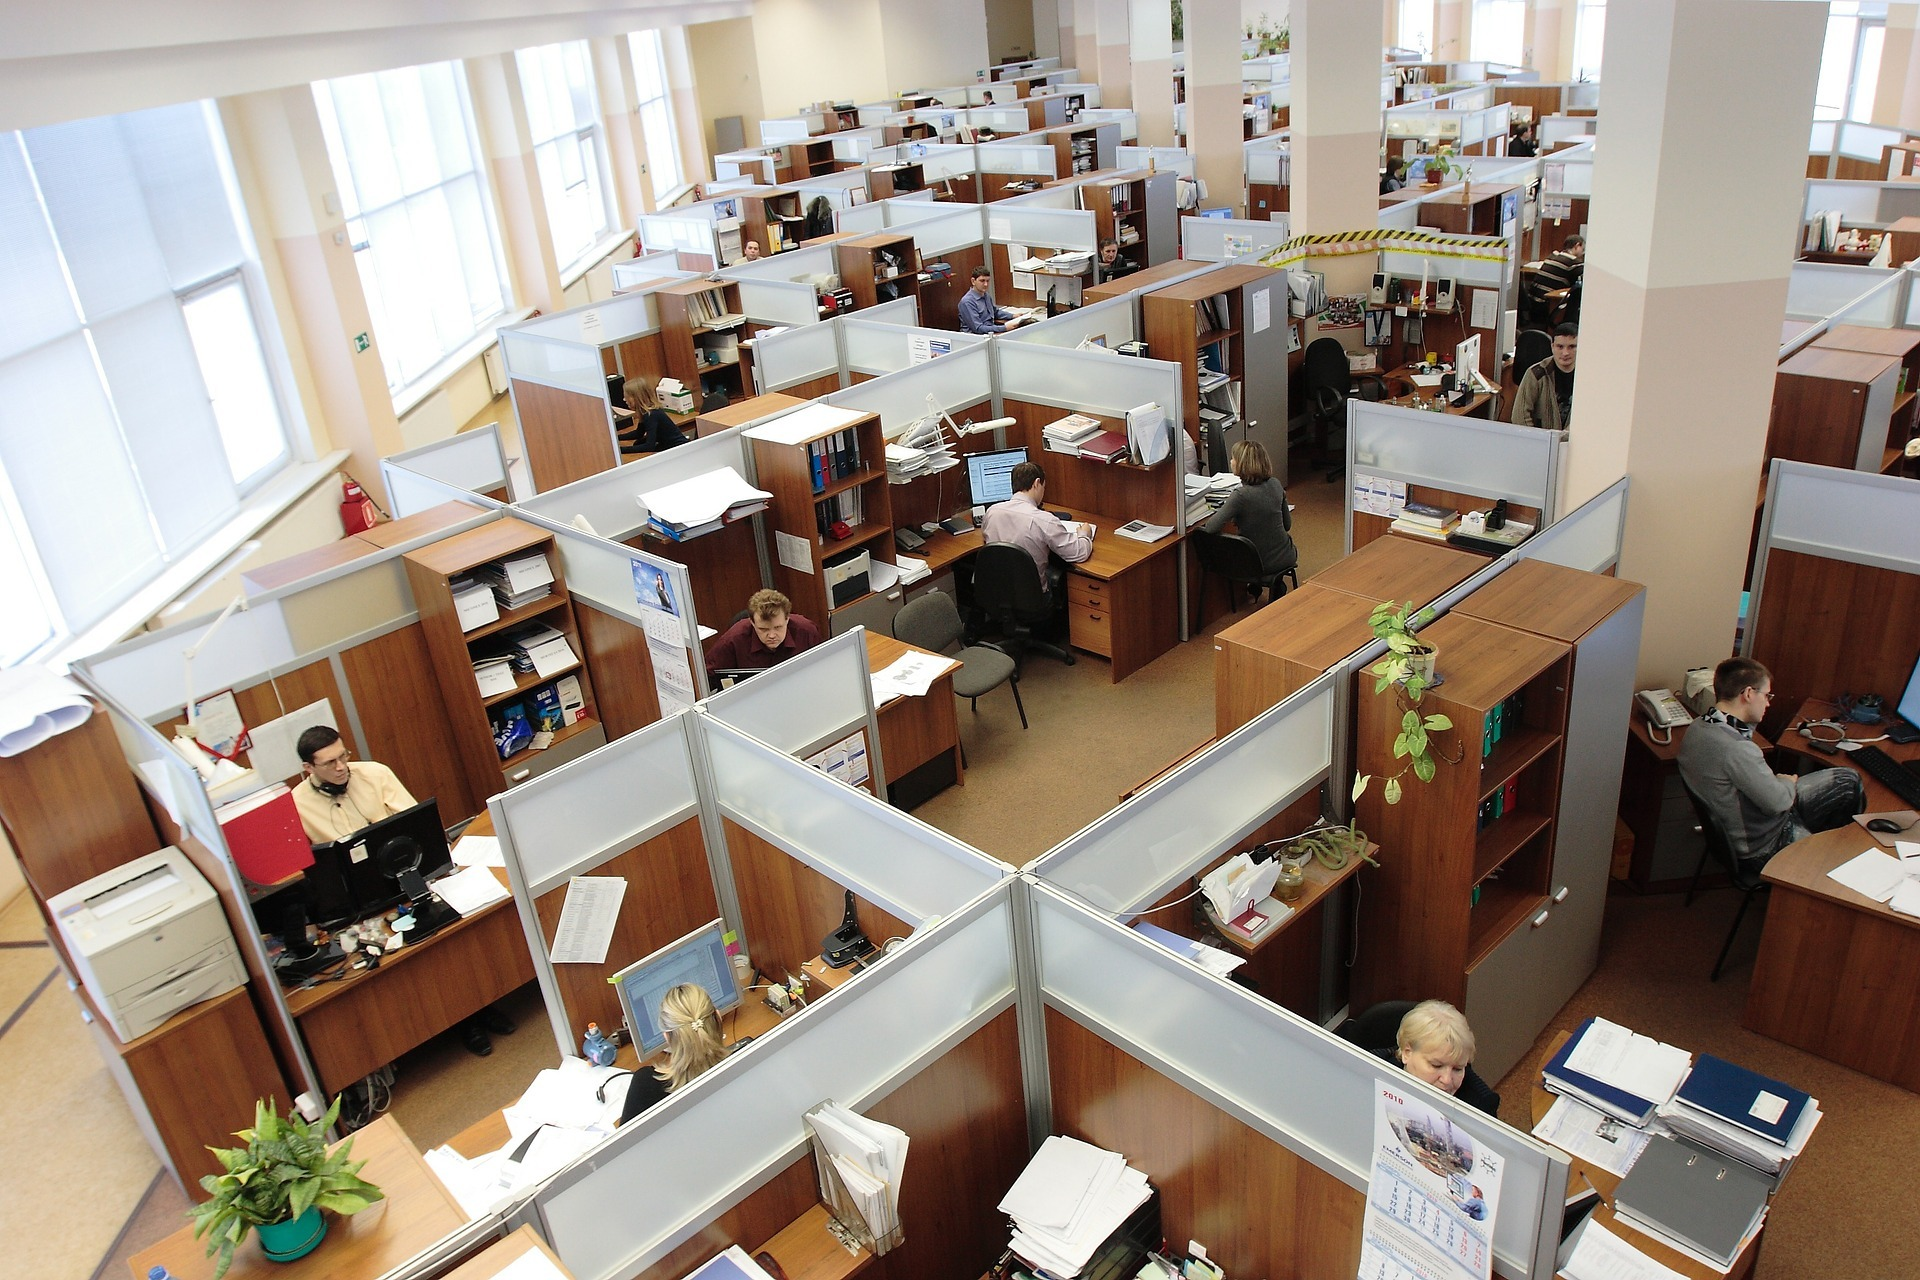 Office full of people and cubicles